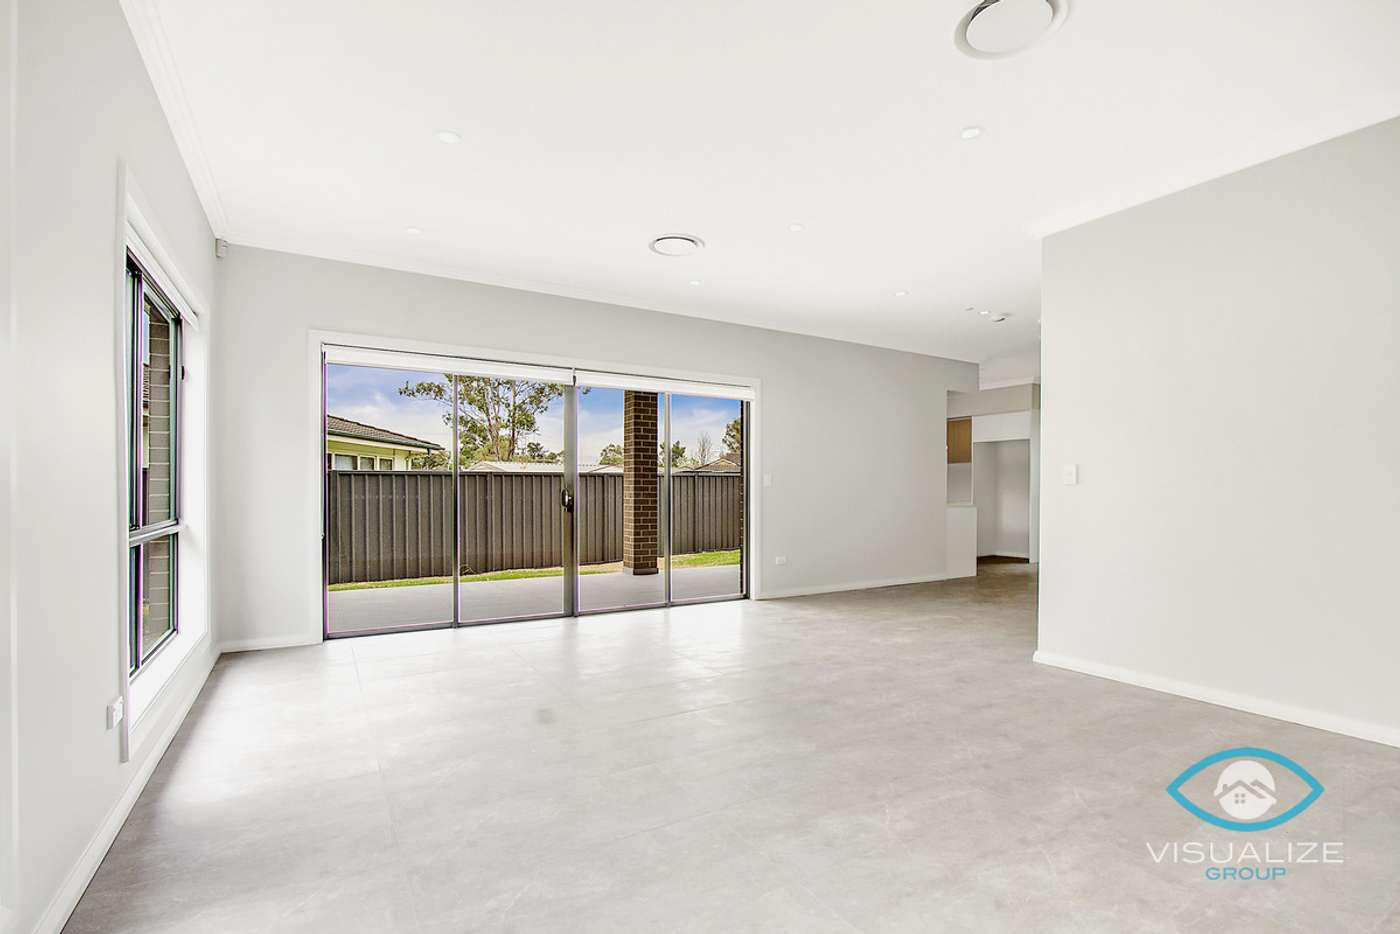 Fifth view of Homely house listing, 1 Anitra Place, Shalvey NSW 2770